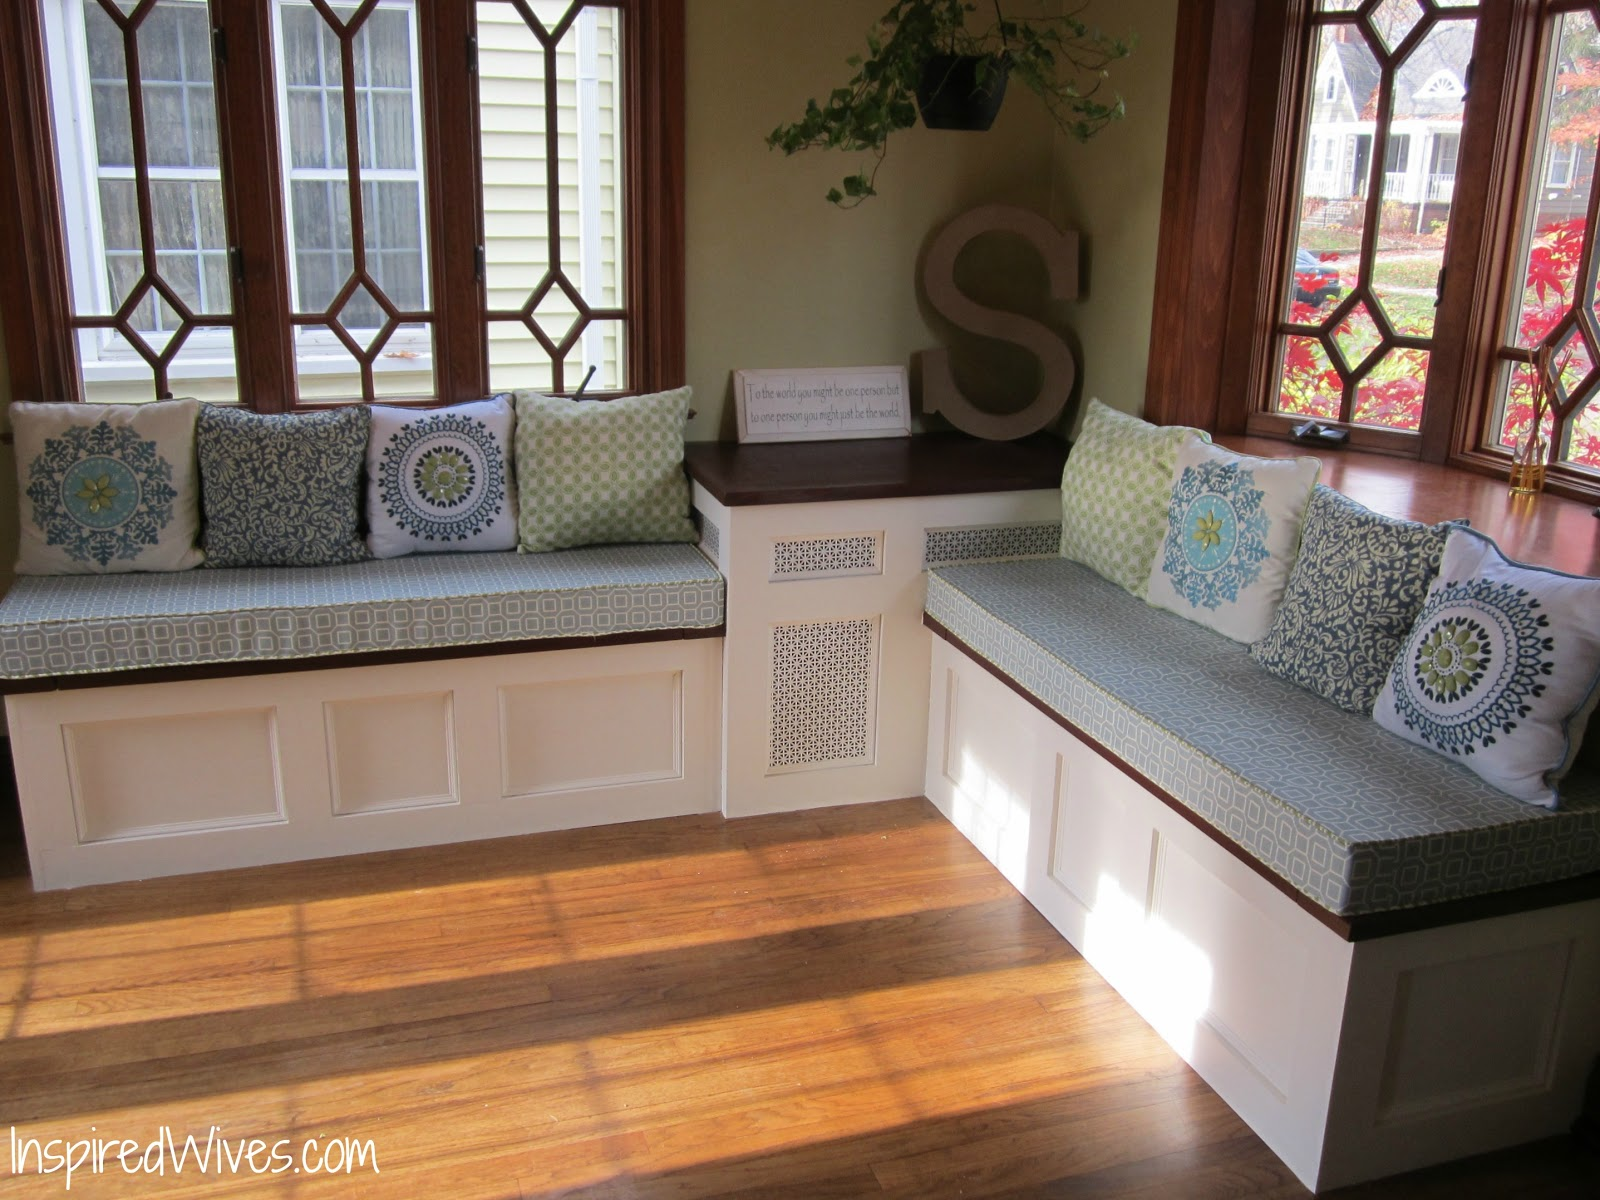 bench seat kitchen table kitchen table bench seat Bench seat kitchen table photo 3